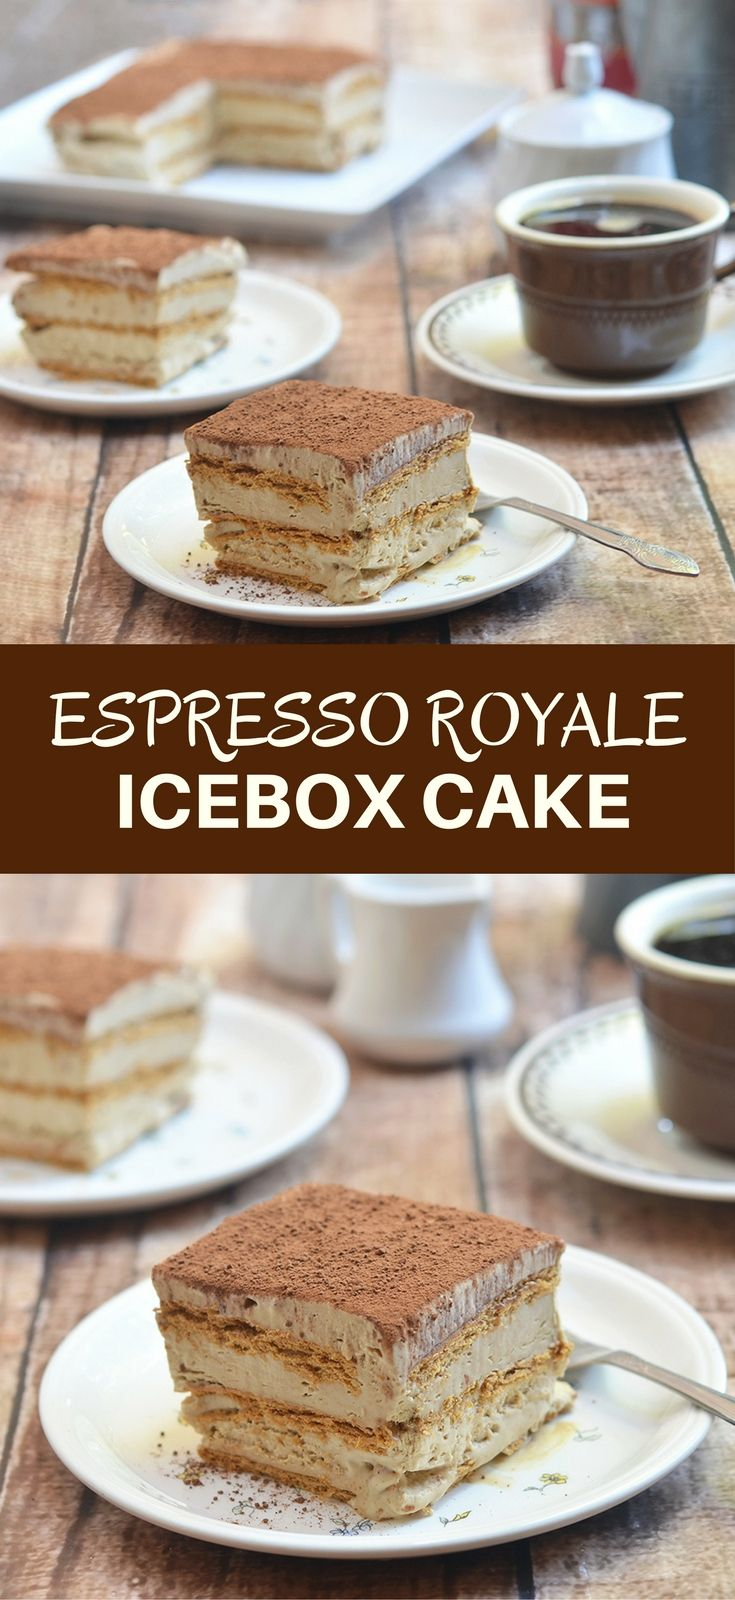 Espresso Royale Icebox Cake with delicious layers of graham crackers and espresso mousse. Rich, silky and with an intense coffee flavor, this icebox cake is so easy to make and is sure to become a favorite summer treat!